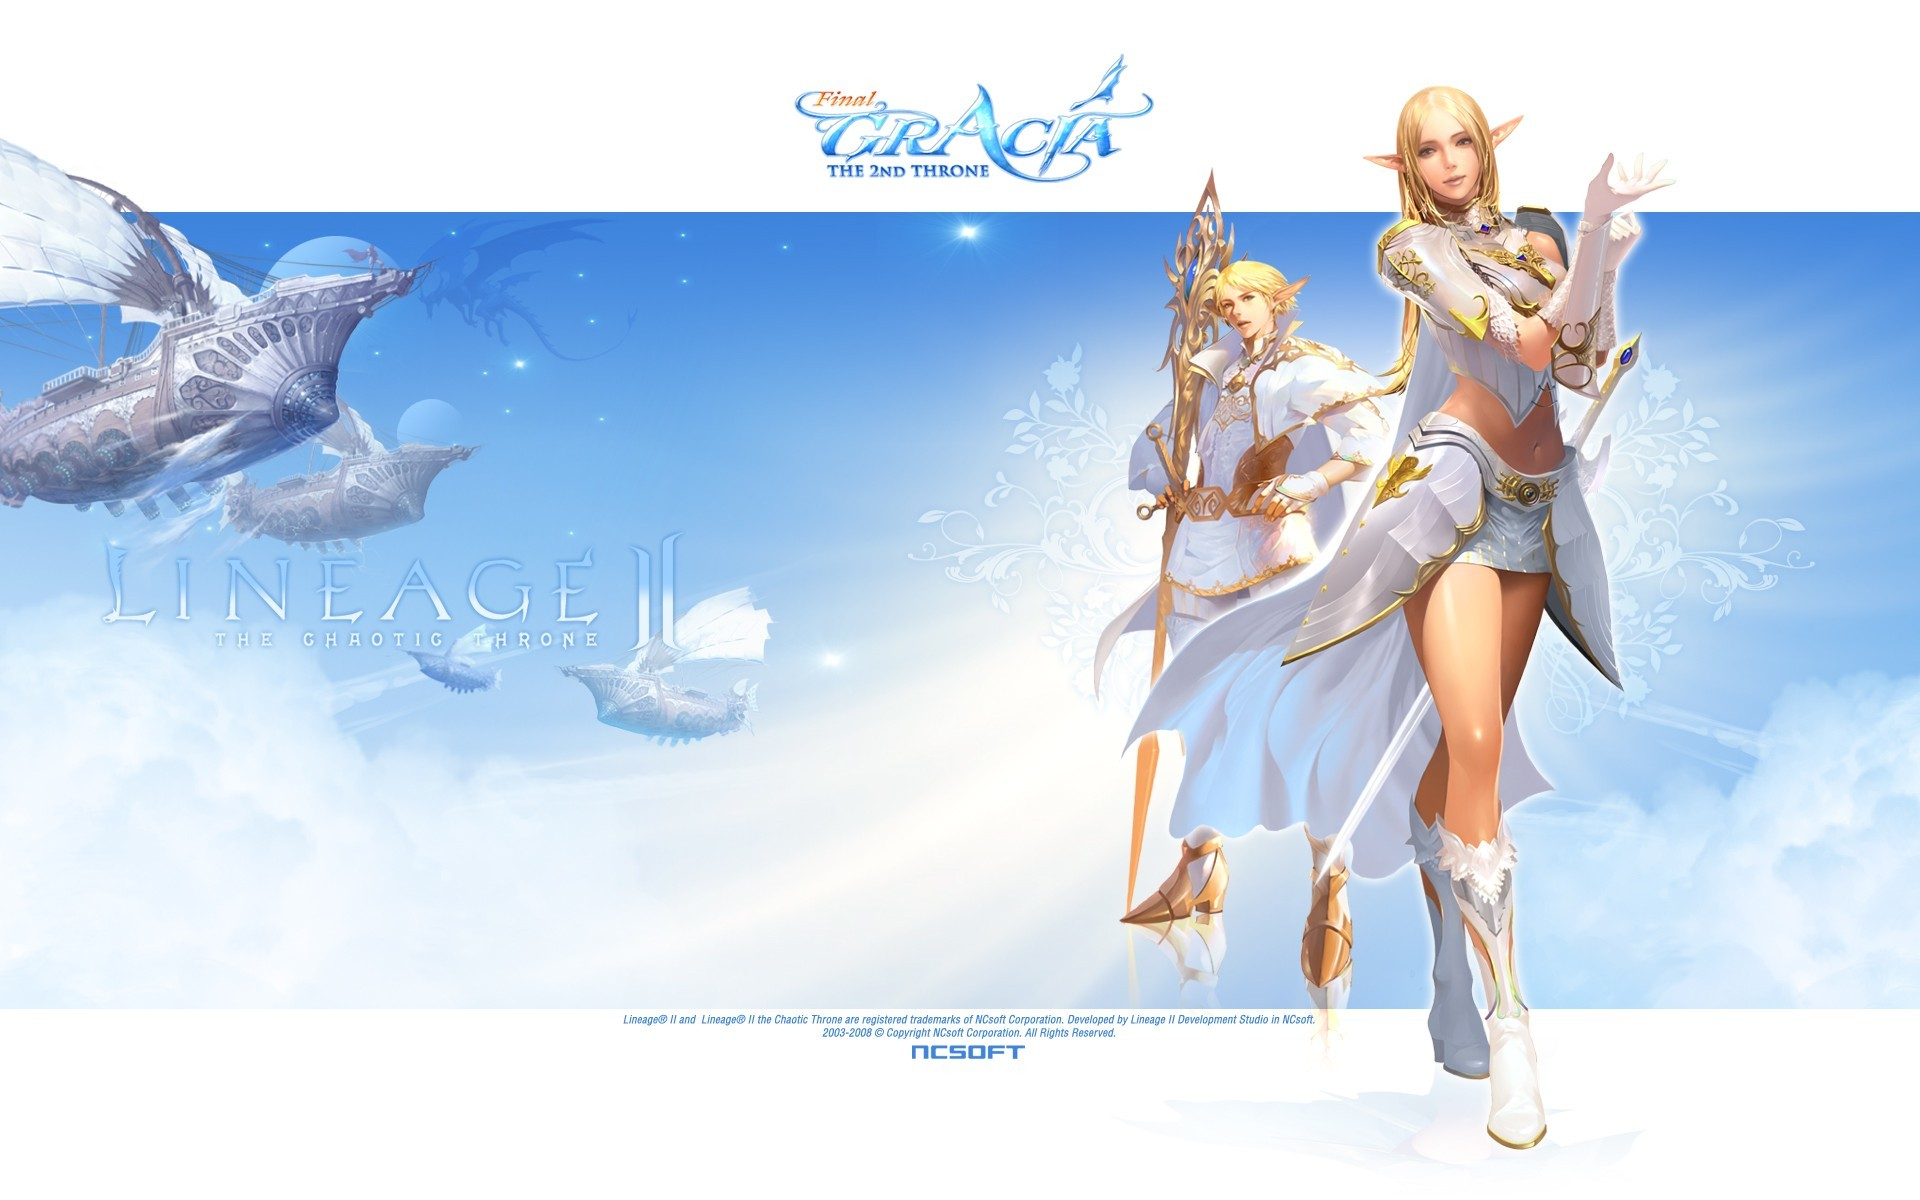 mage lineage elves lineage HD Wallpaper